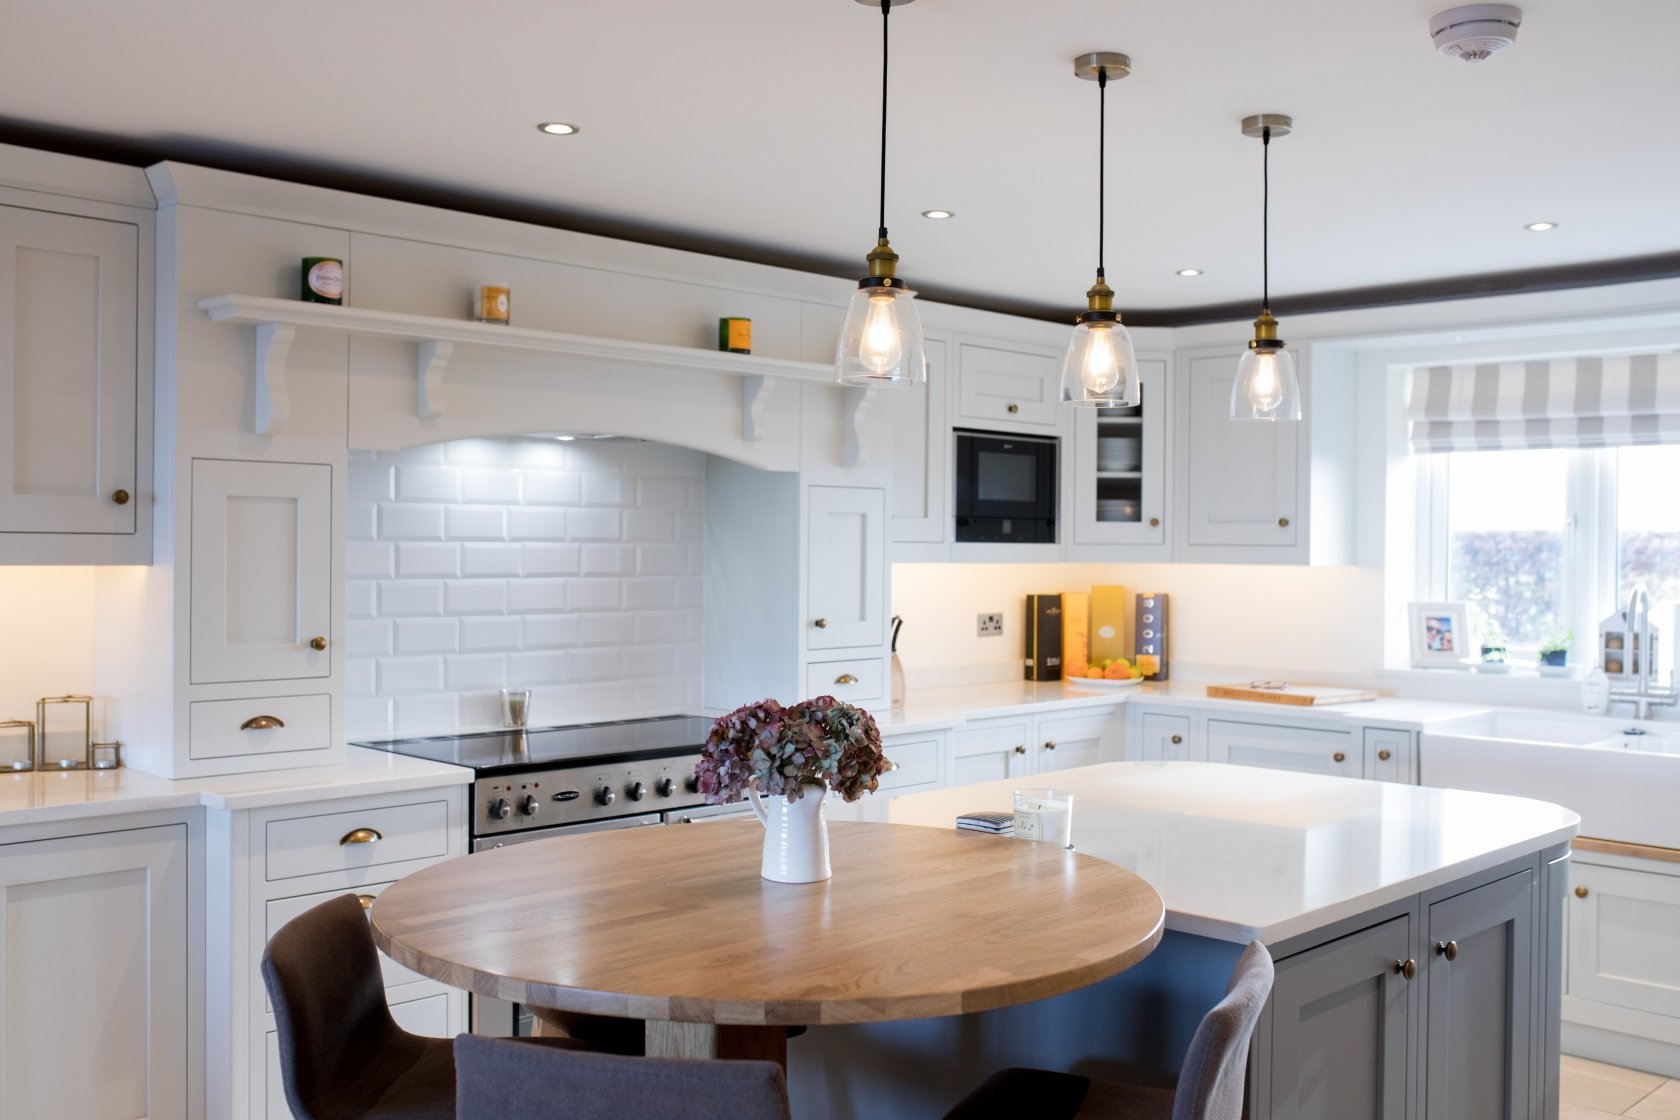 kitchen cabinets factory calgary with Kingswood Kitchens Ashby De La Zouch on Book Calgary Appliance Repair Specialist as well Factory Direct Kitchen Cabi s Wholesale besides Kitchen Renovation additionally Stainless Steel  mercial Kitchen Cabi s besides Photo Tour Of A Cars.